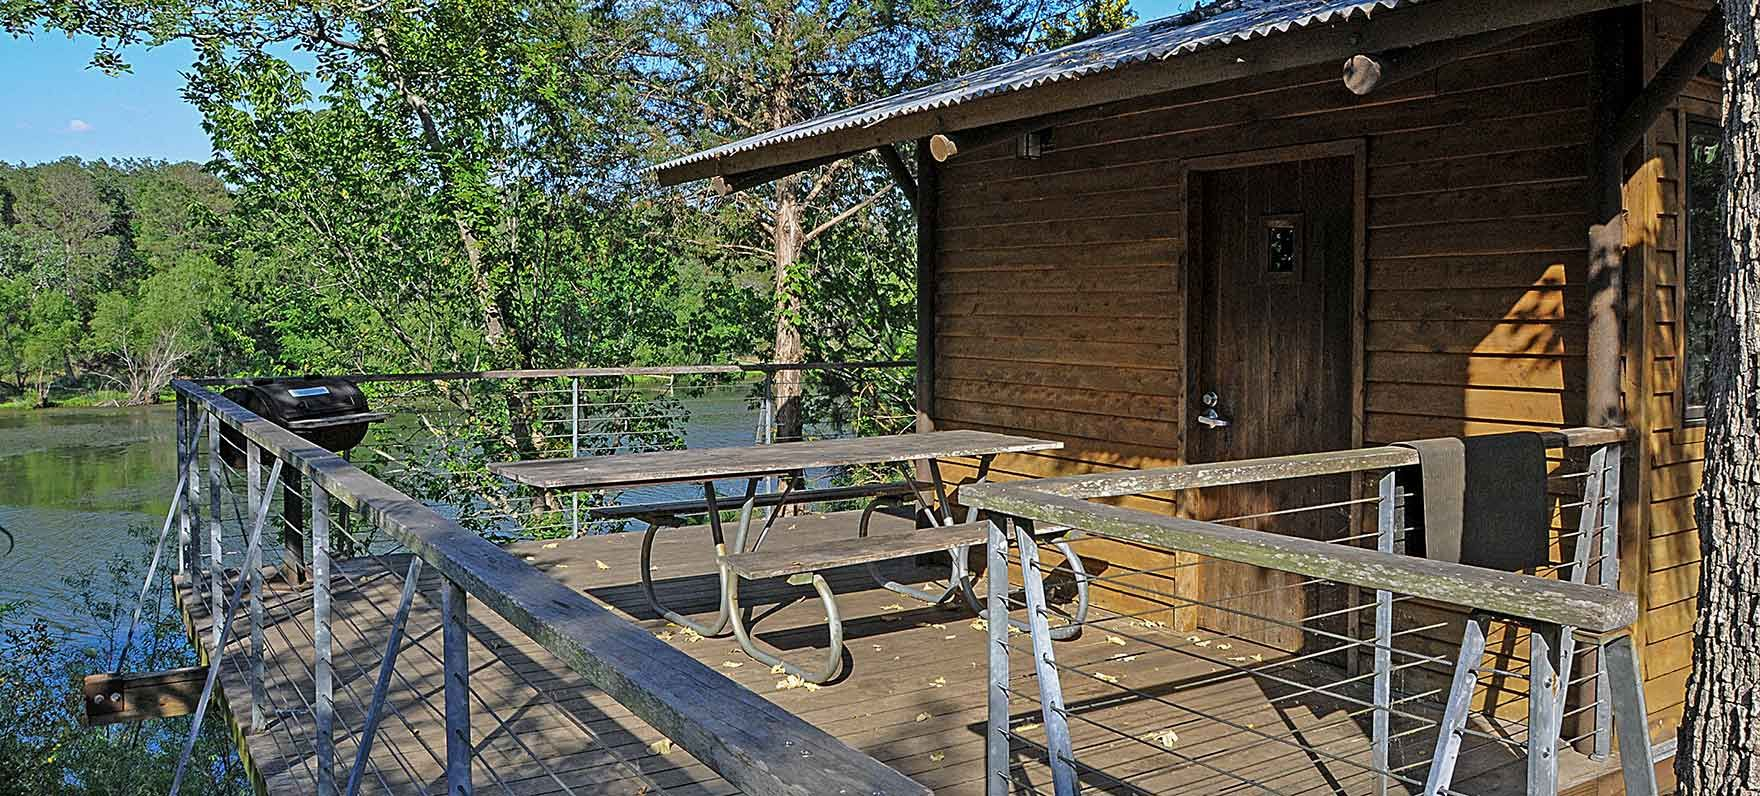 Buescher State Park Limited Use Cabins — Texas Parks & Wildlife Department